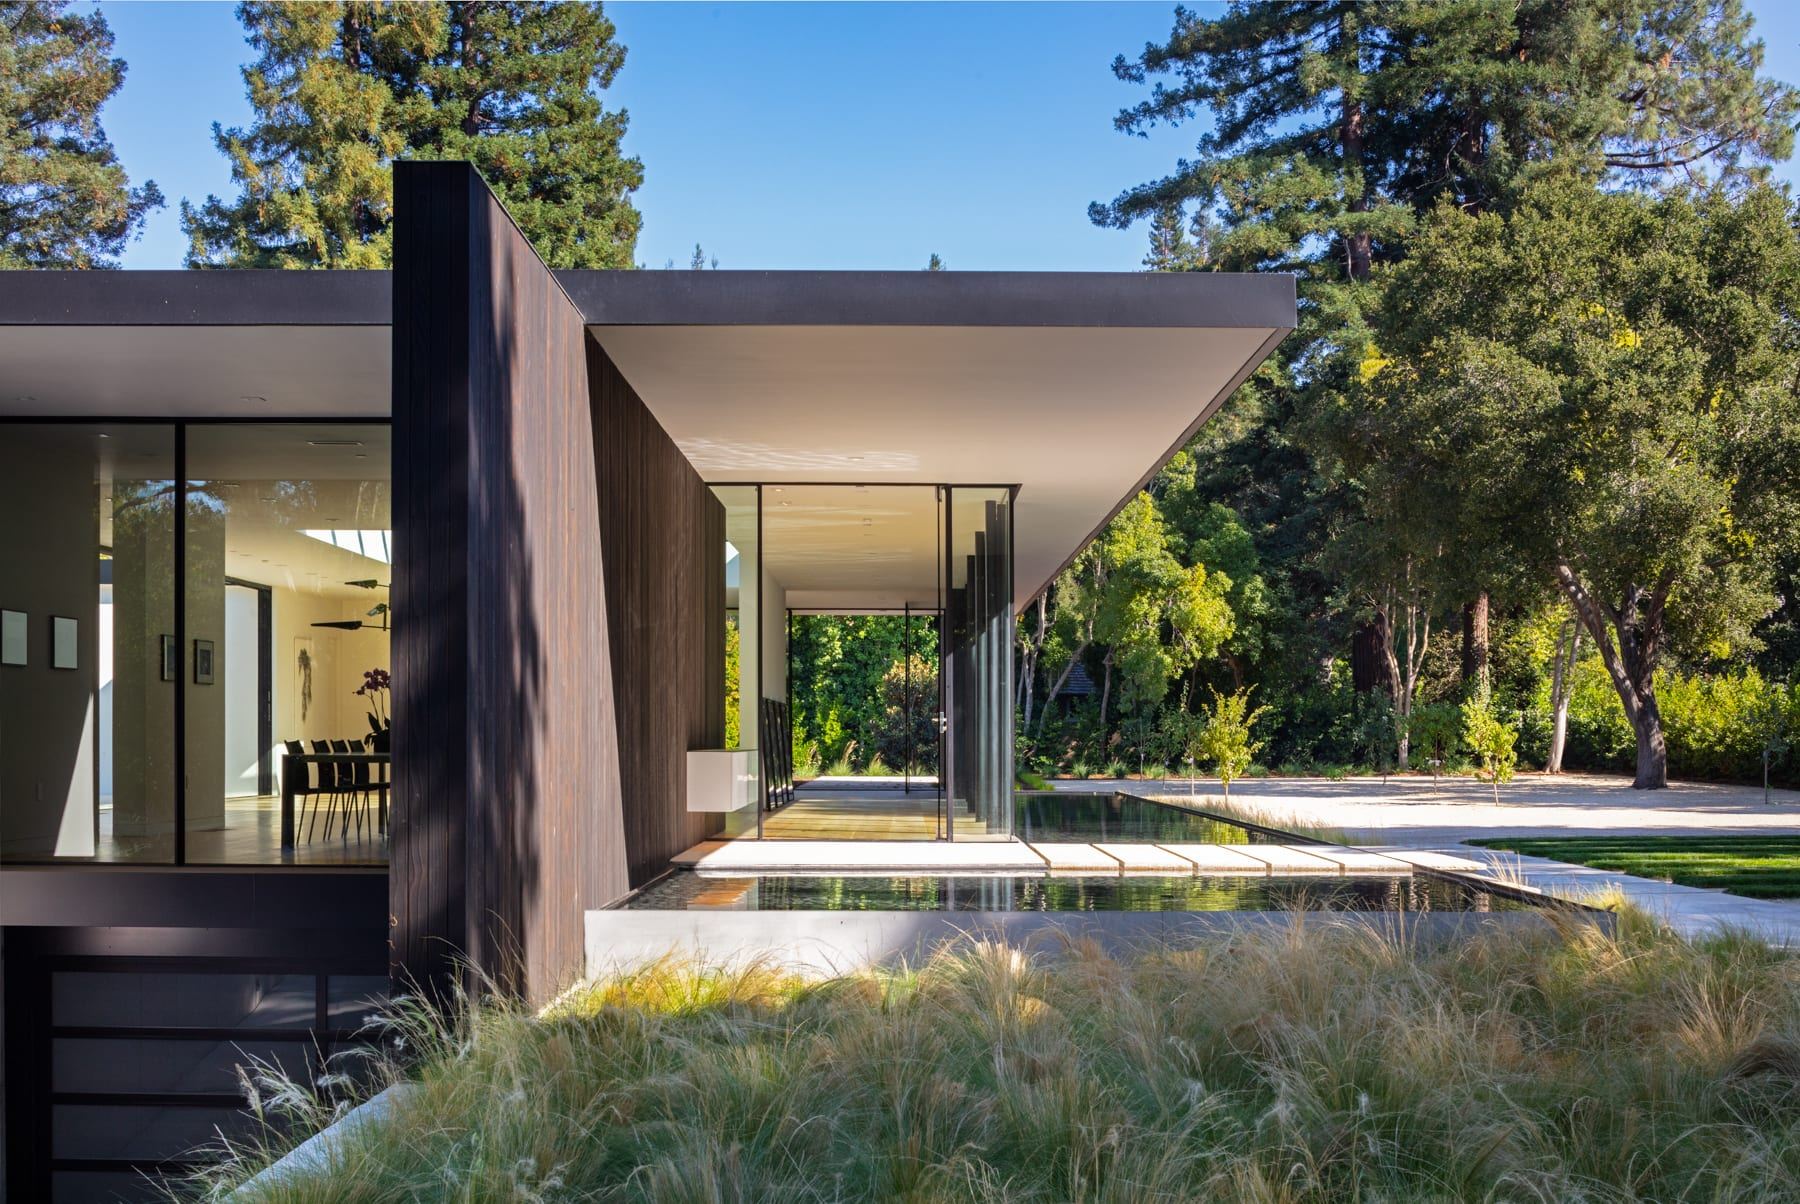 Silicon Valley Residence - Delta Millworks